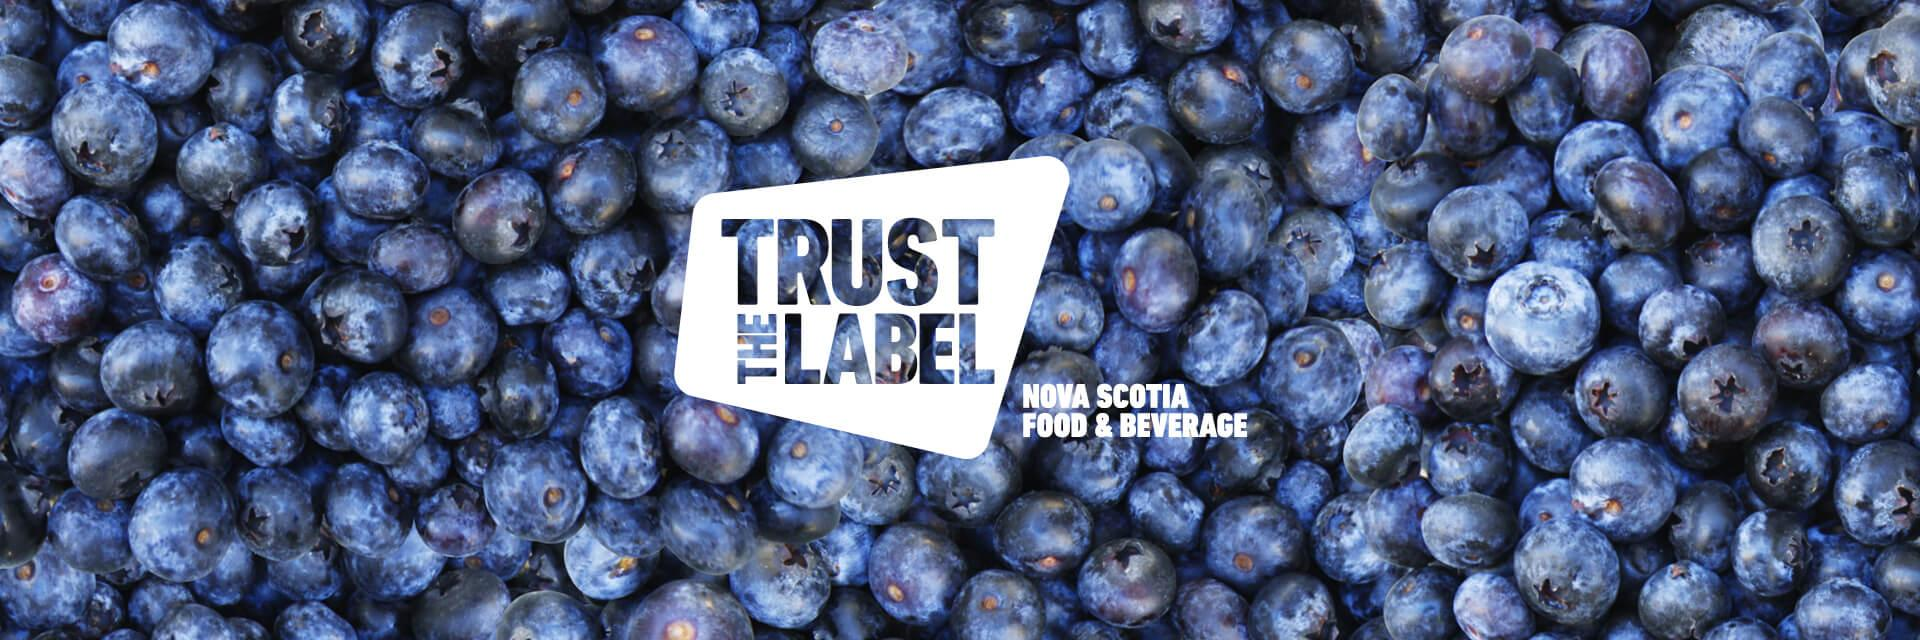 A 'Trust the Label' Nova Scotia Food and Beverage logo overlaid on a photo of blueberries.